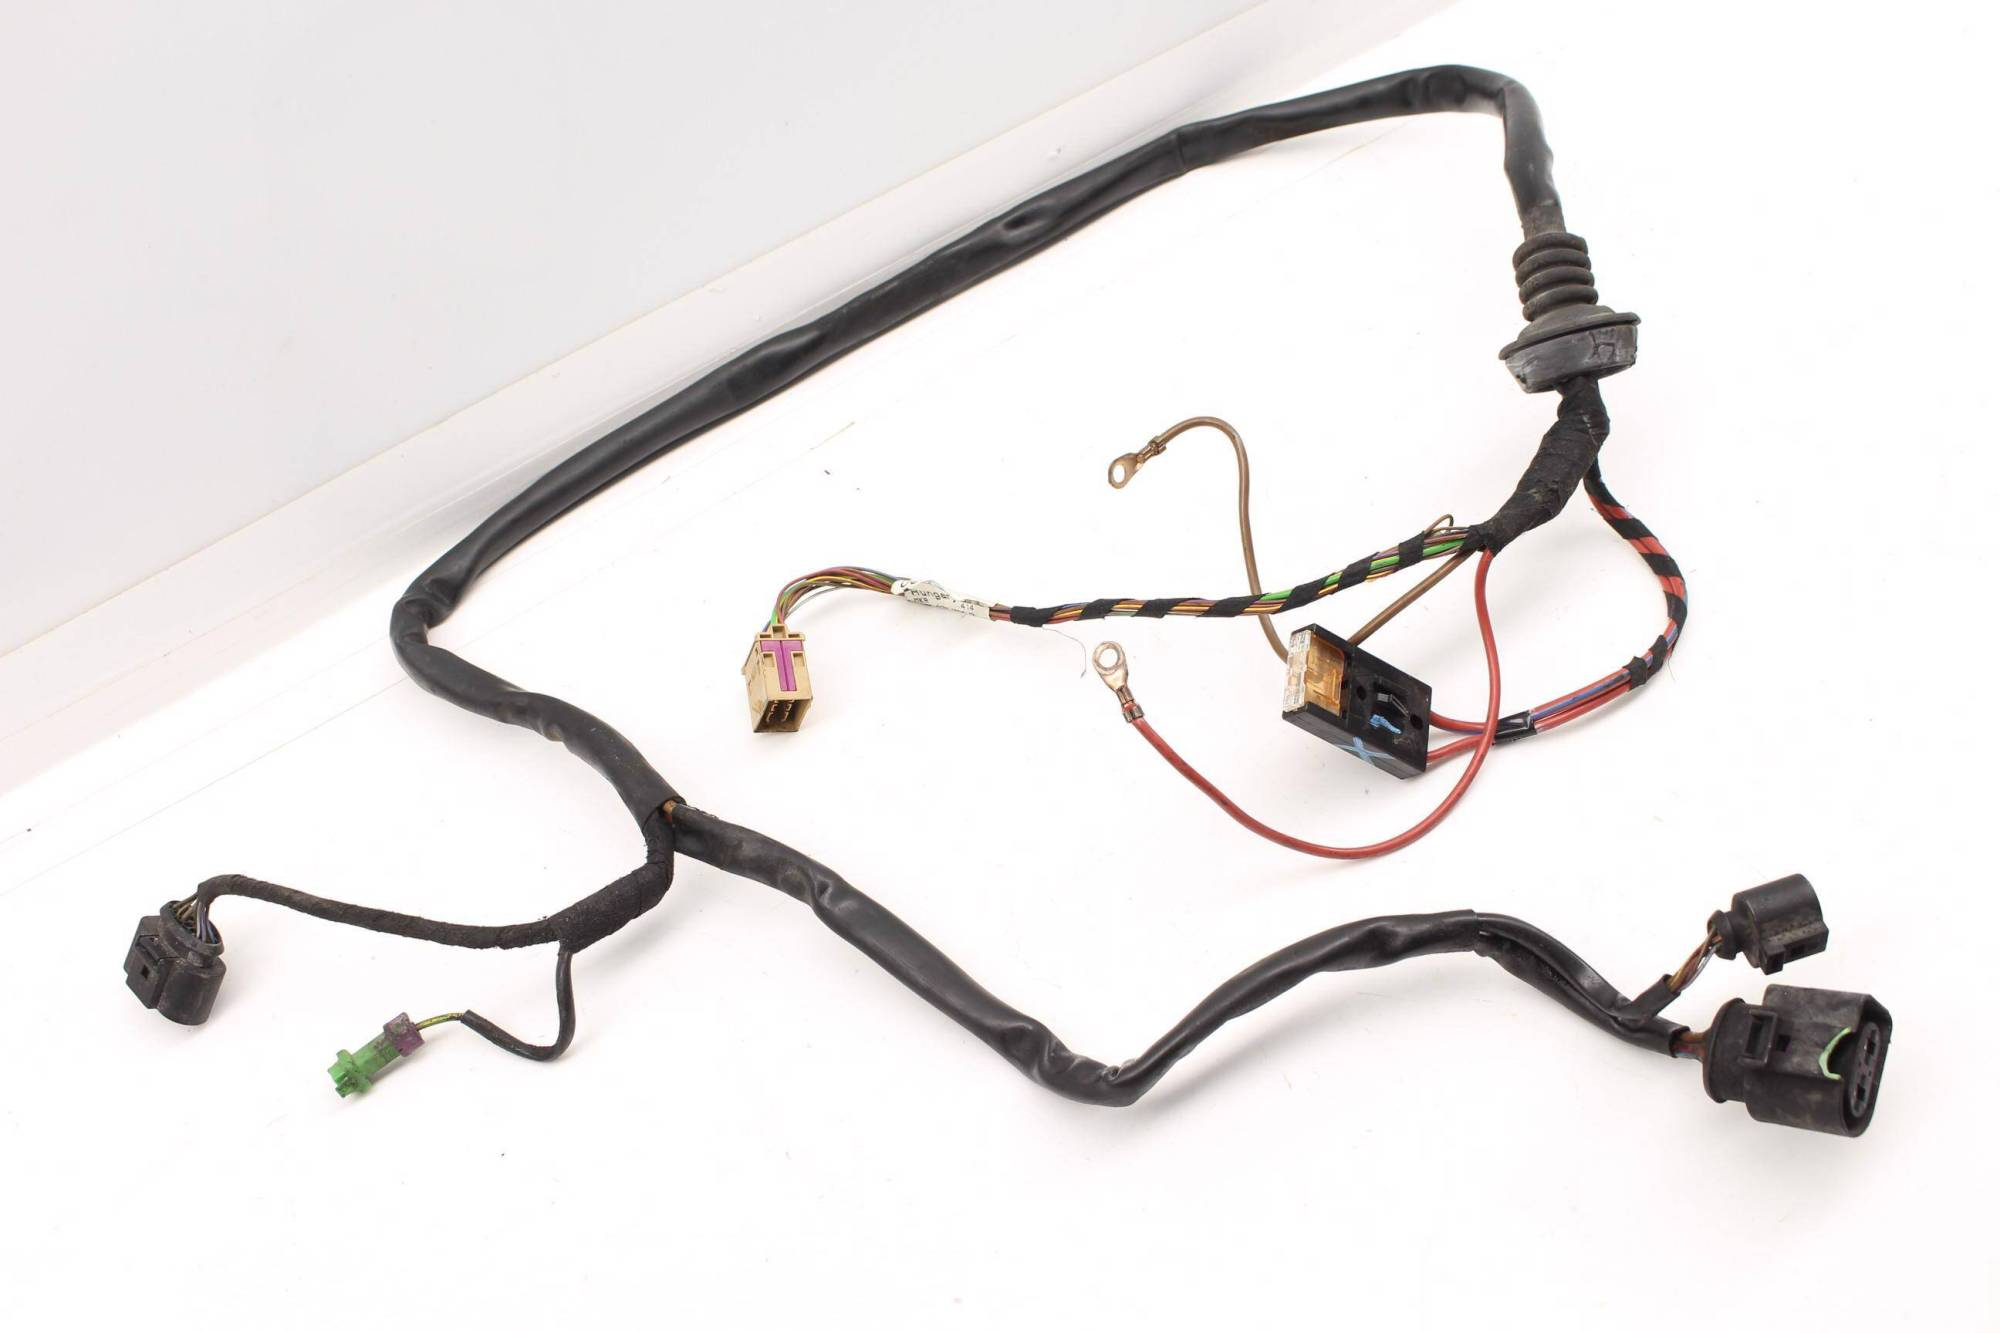 hight resolution of 2001 audi allroad c5 2 7 electric fan ac compressor wiring pac wiring harness 350z ac wiring harness